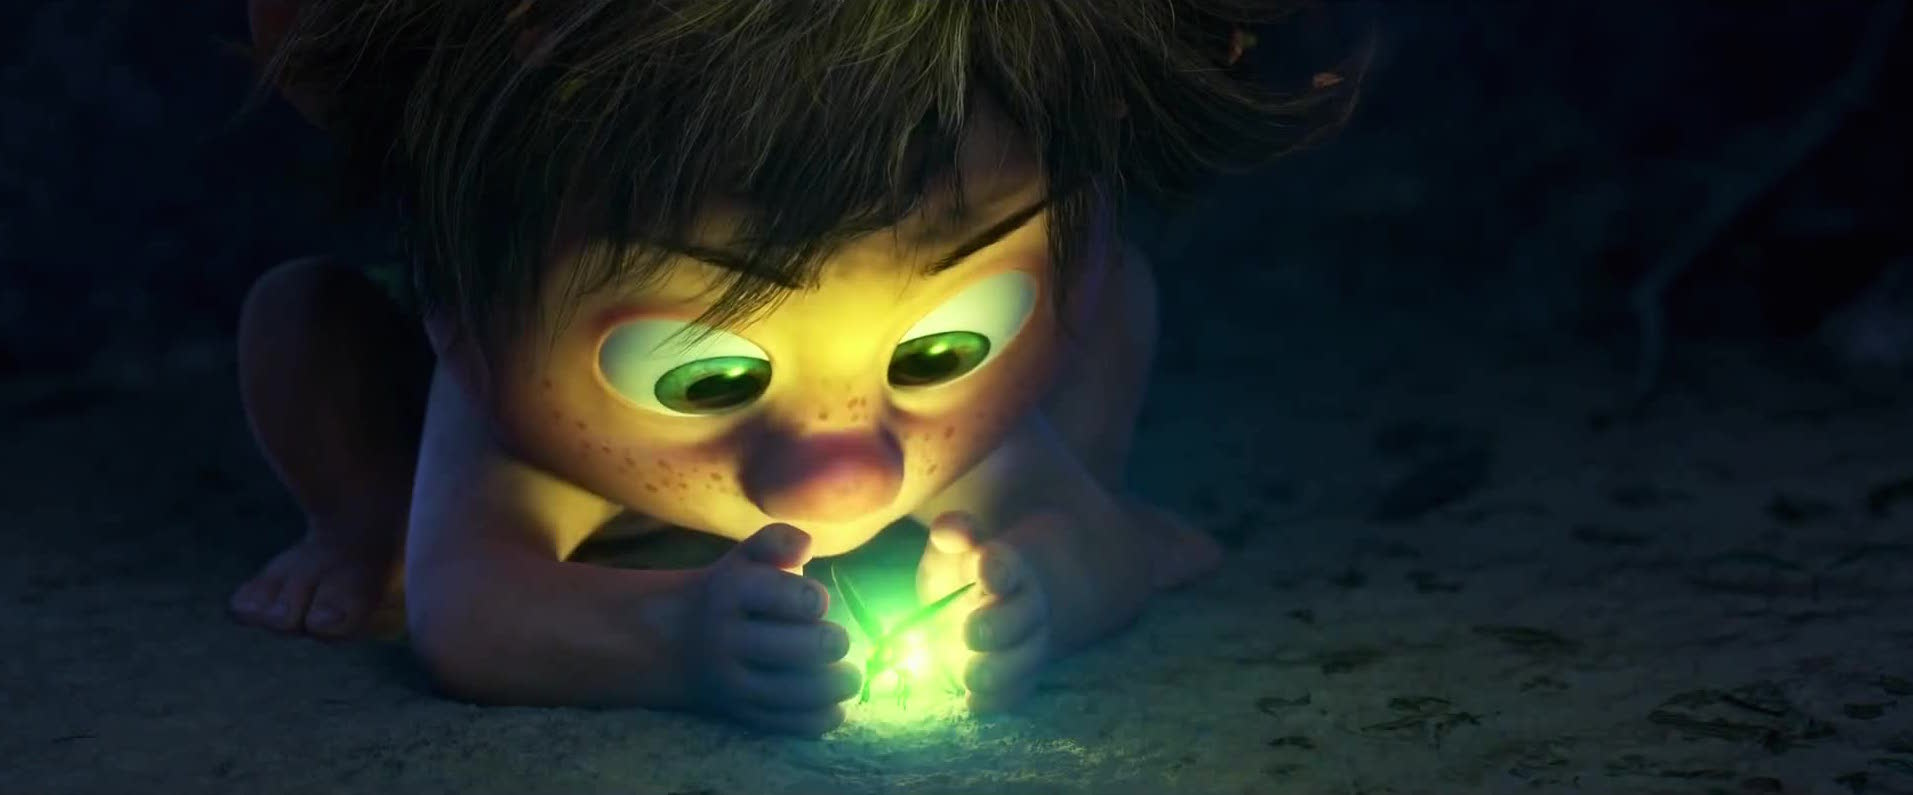 Pixar Post - The Good Dinosaur Spot Firefly light.jpg